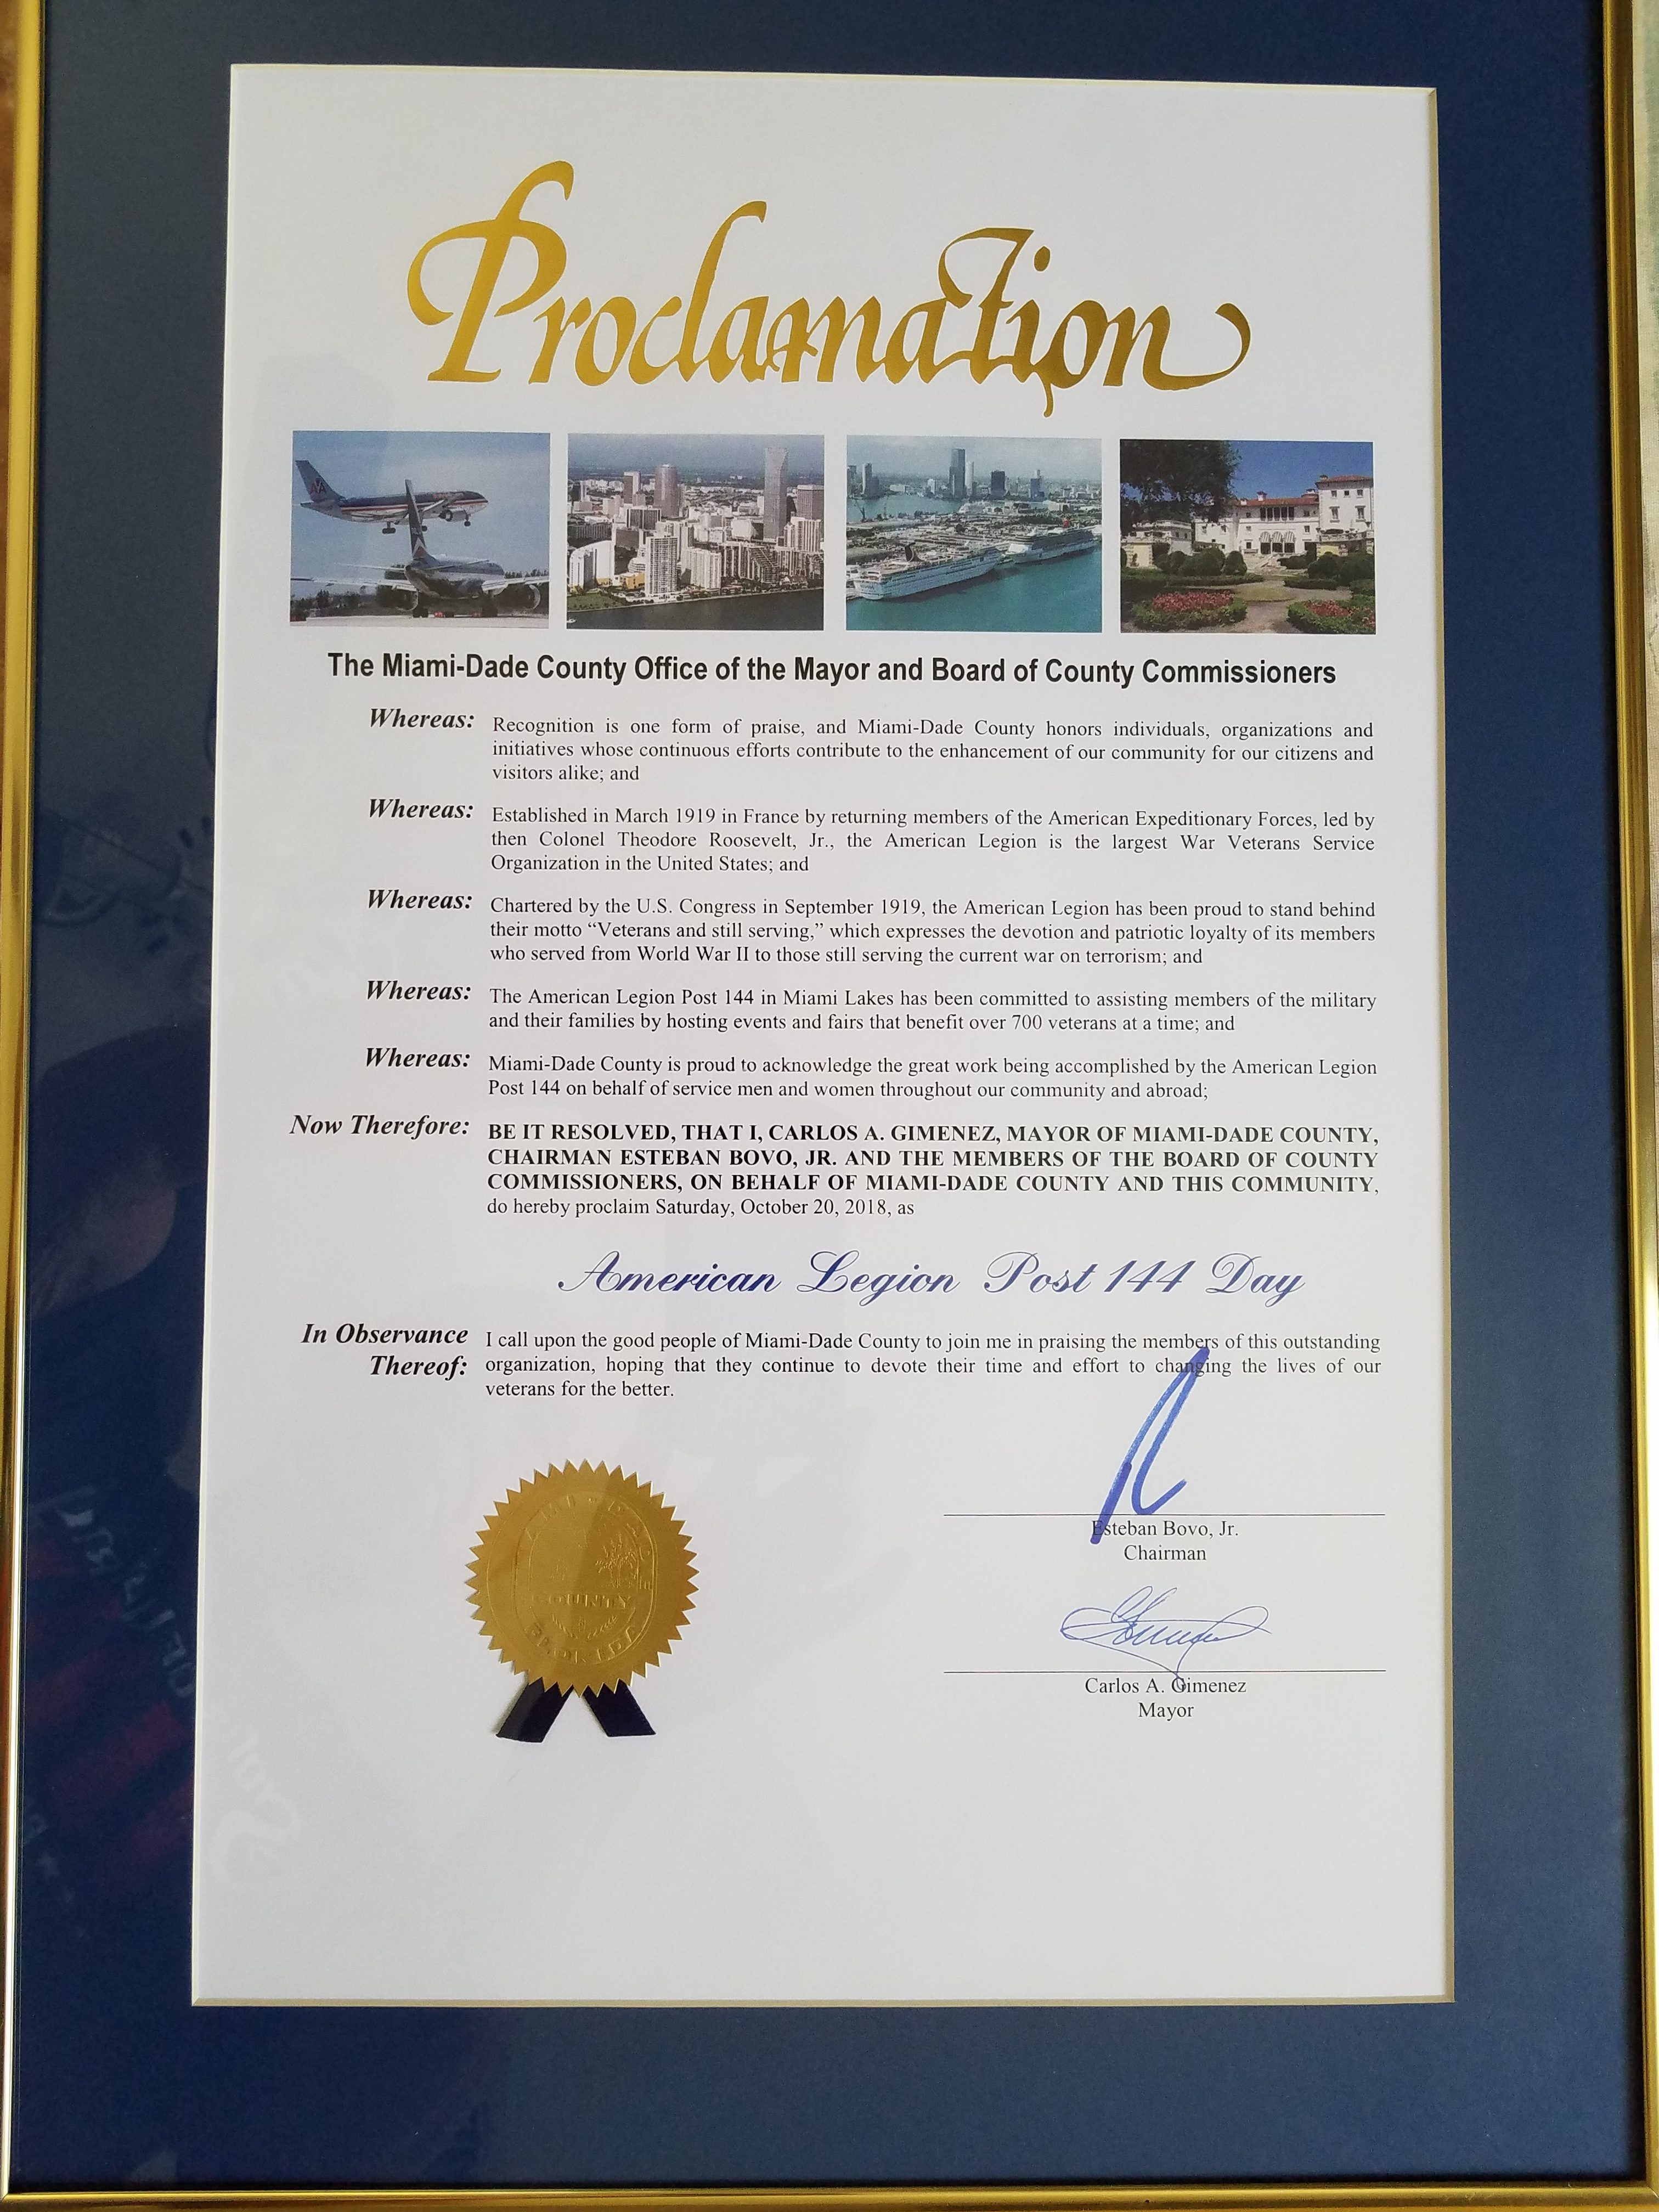 Miami Dade County Proclamation to Post 144